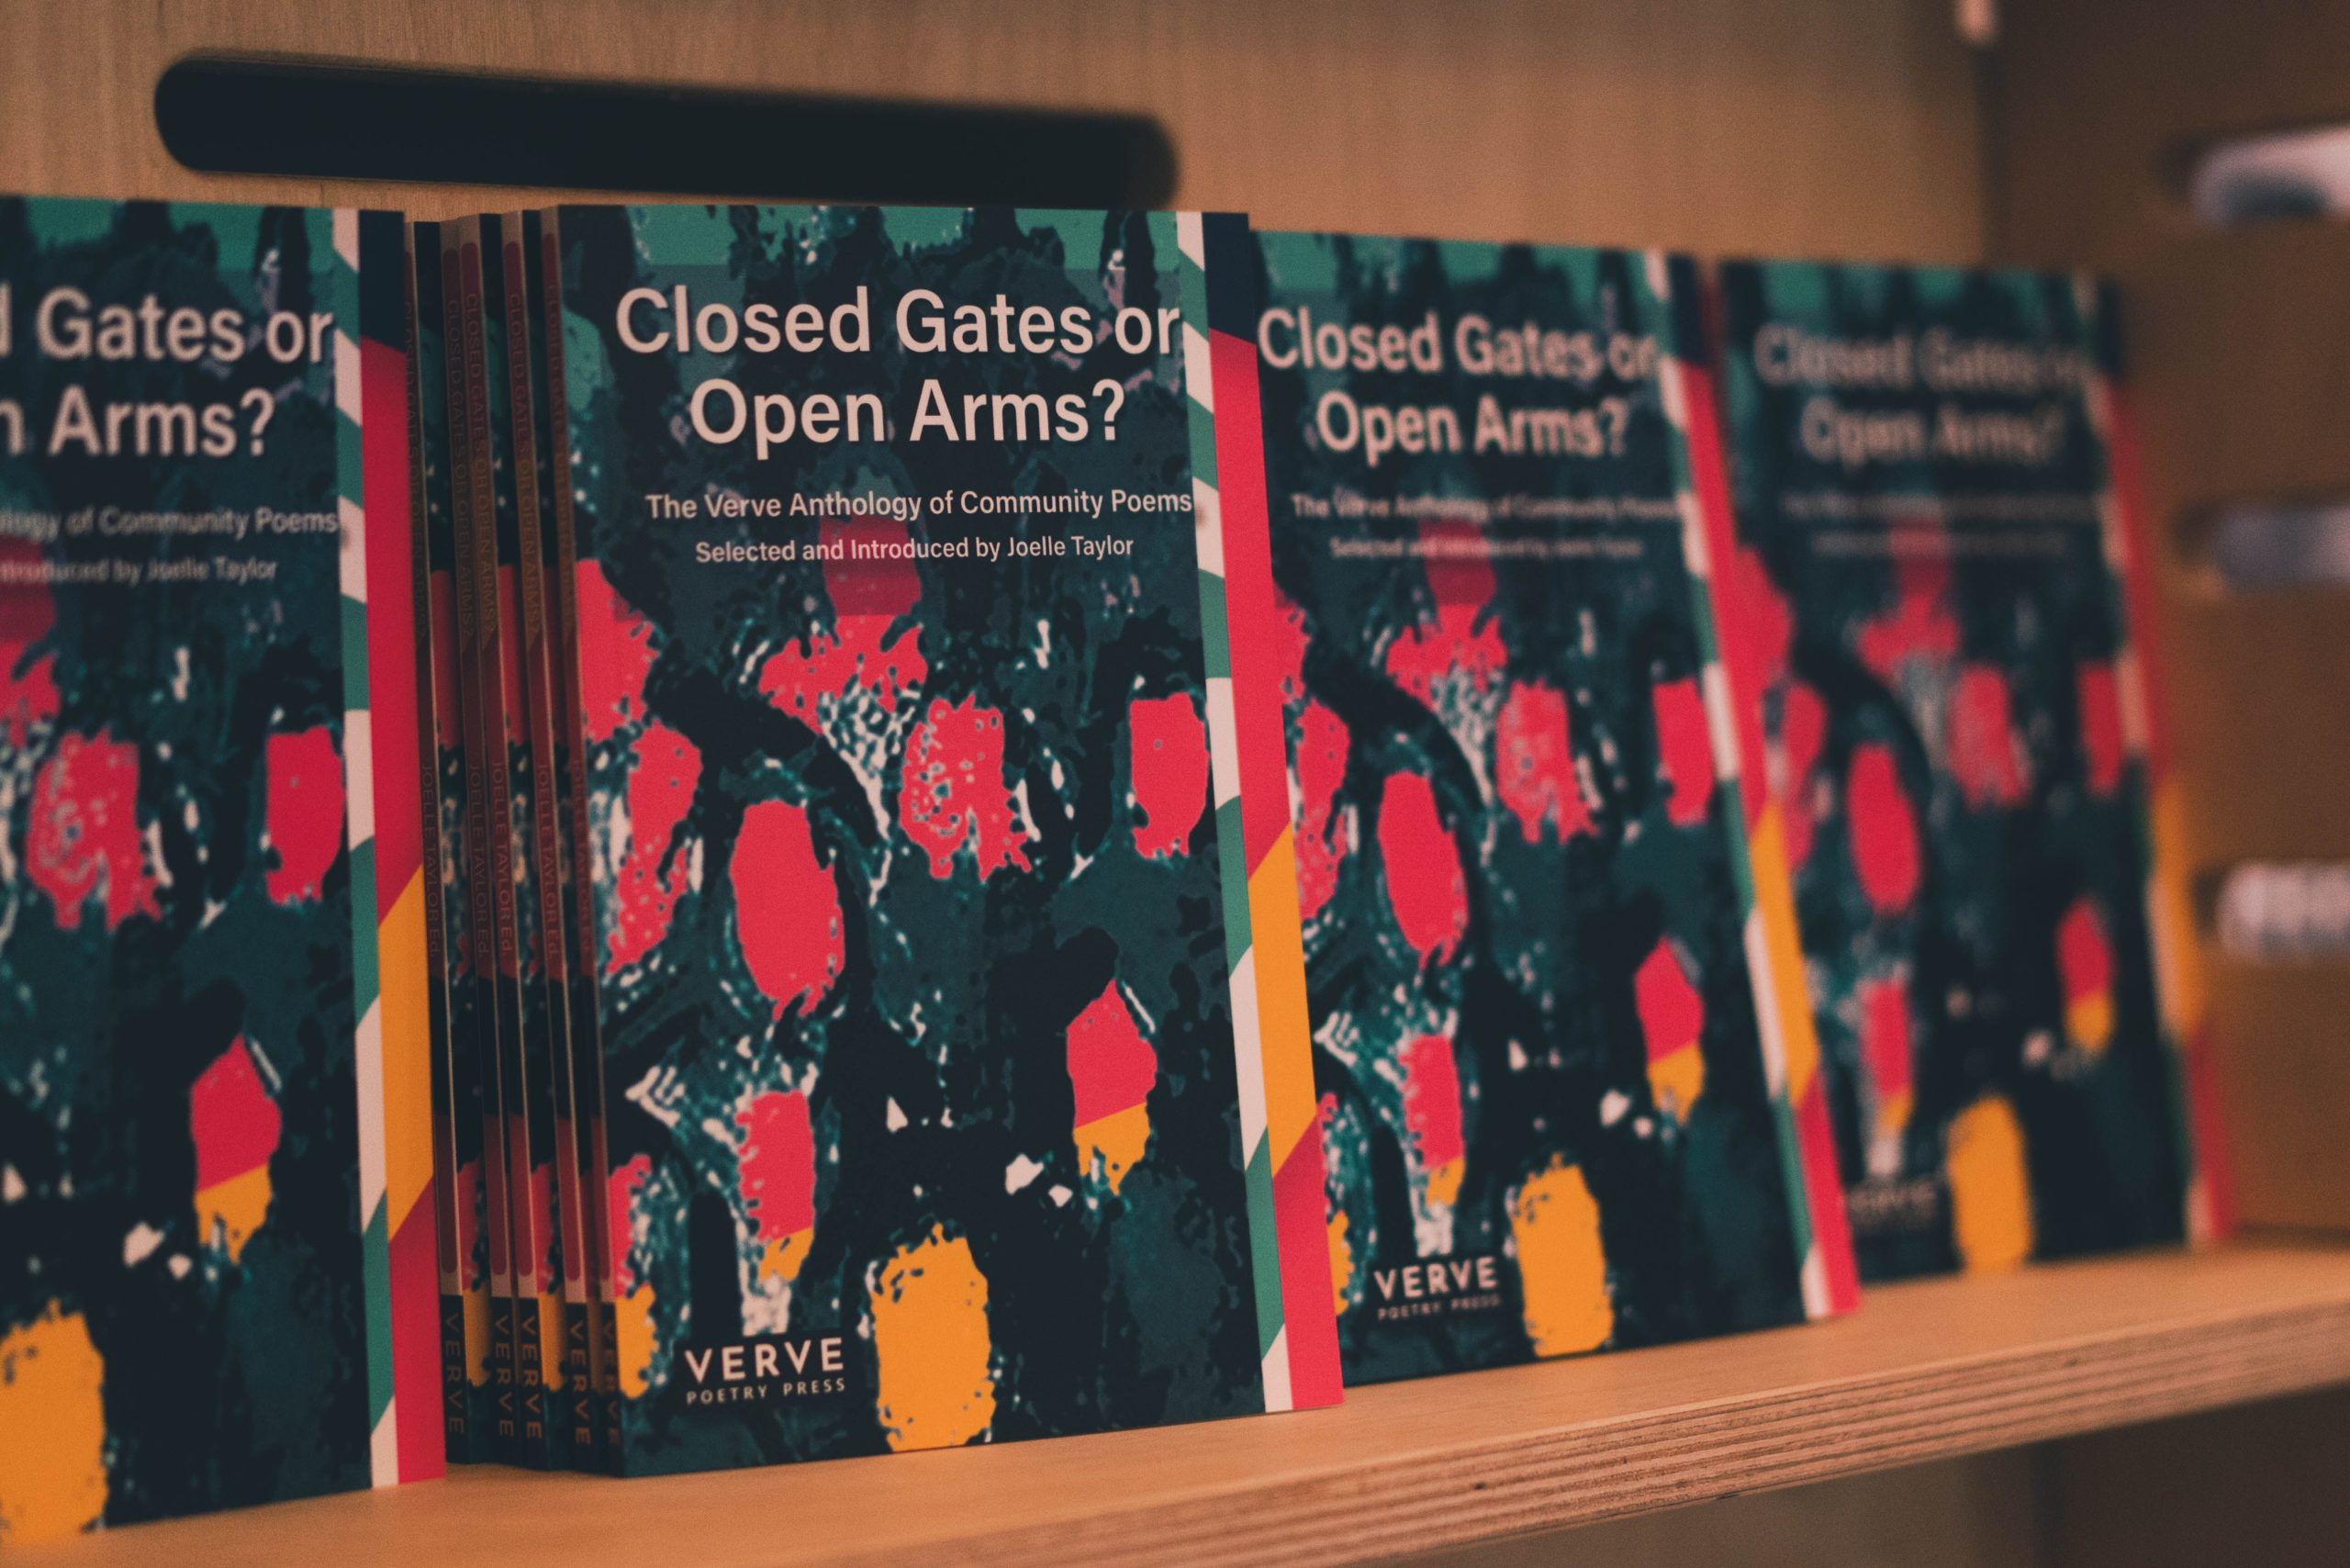 Photo of the book 'CLosed Gates or Open Arms?' an anthology edited by Joelle Taylor and printed by Verve Poetry PRess